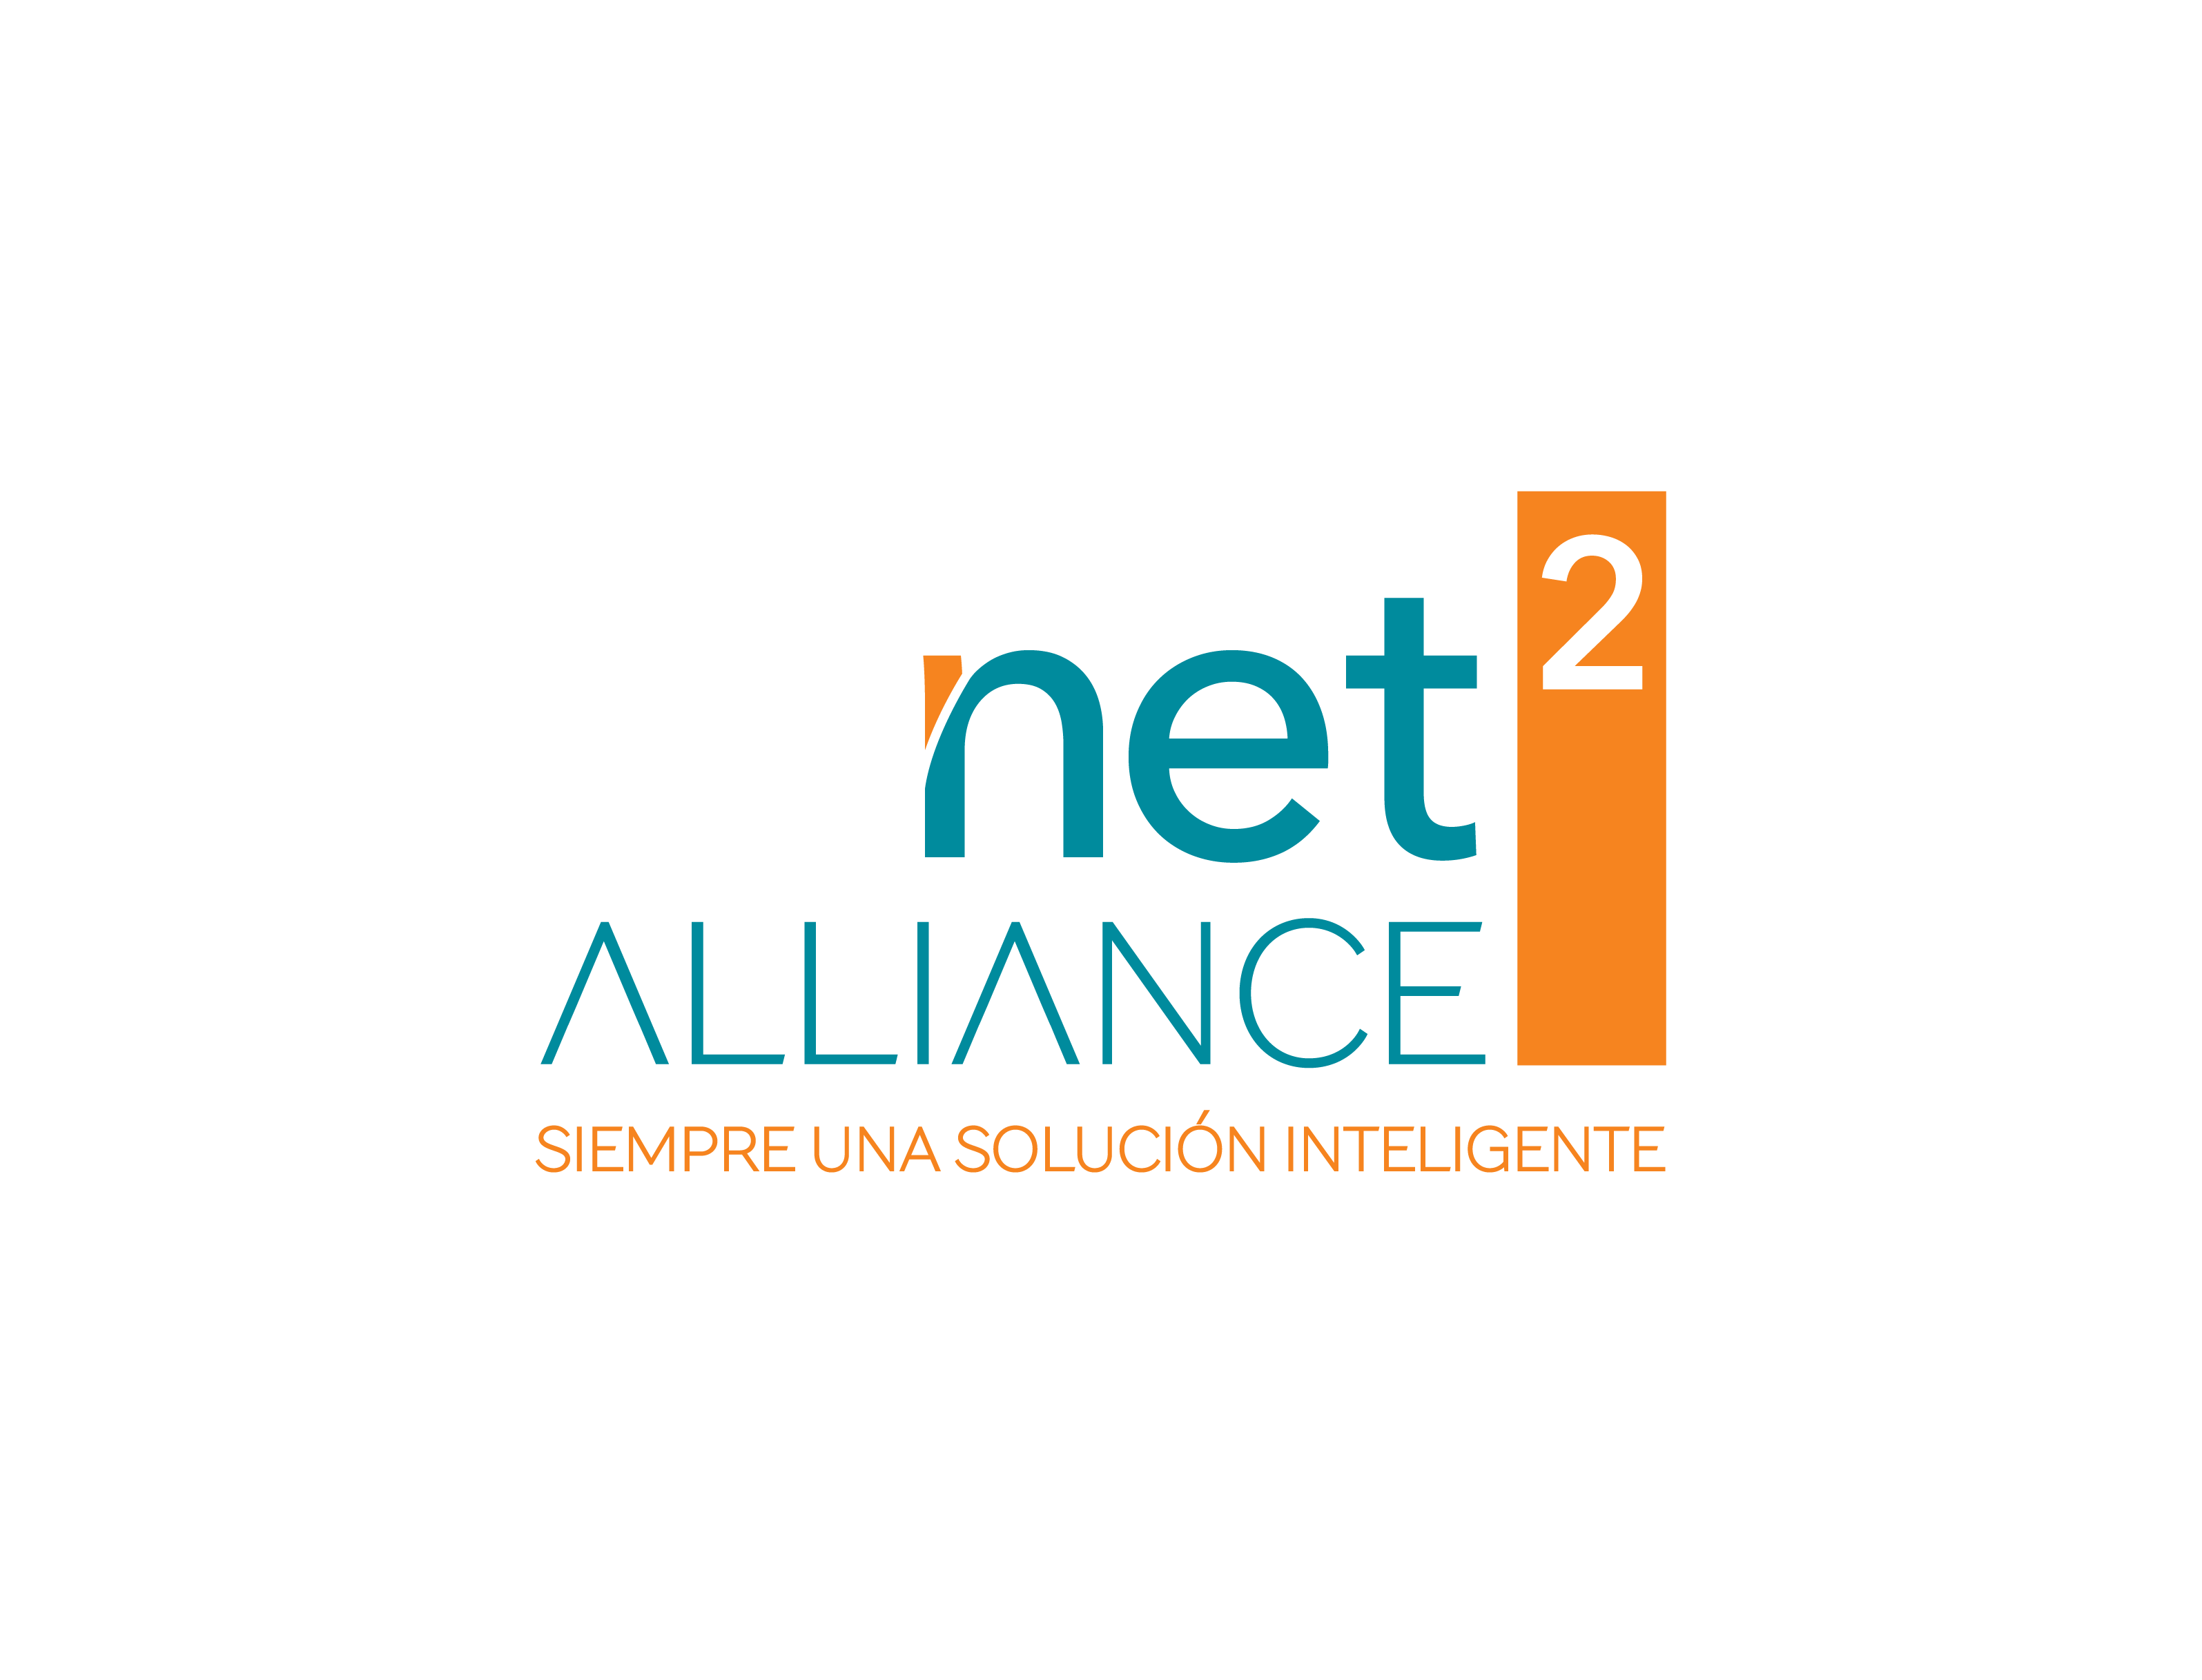 Net2Alliance